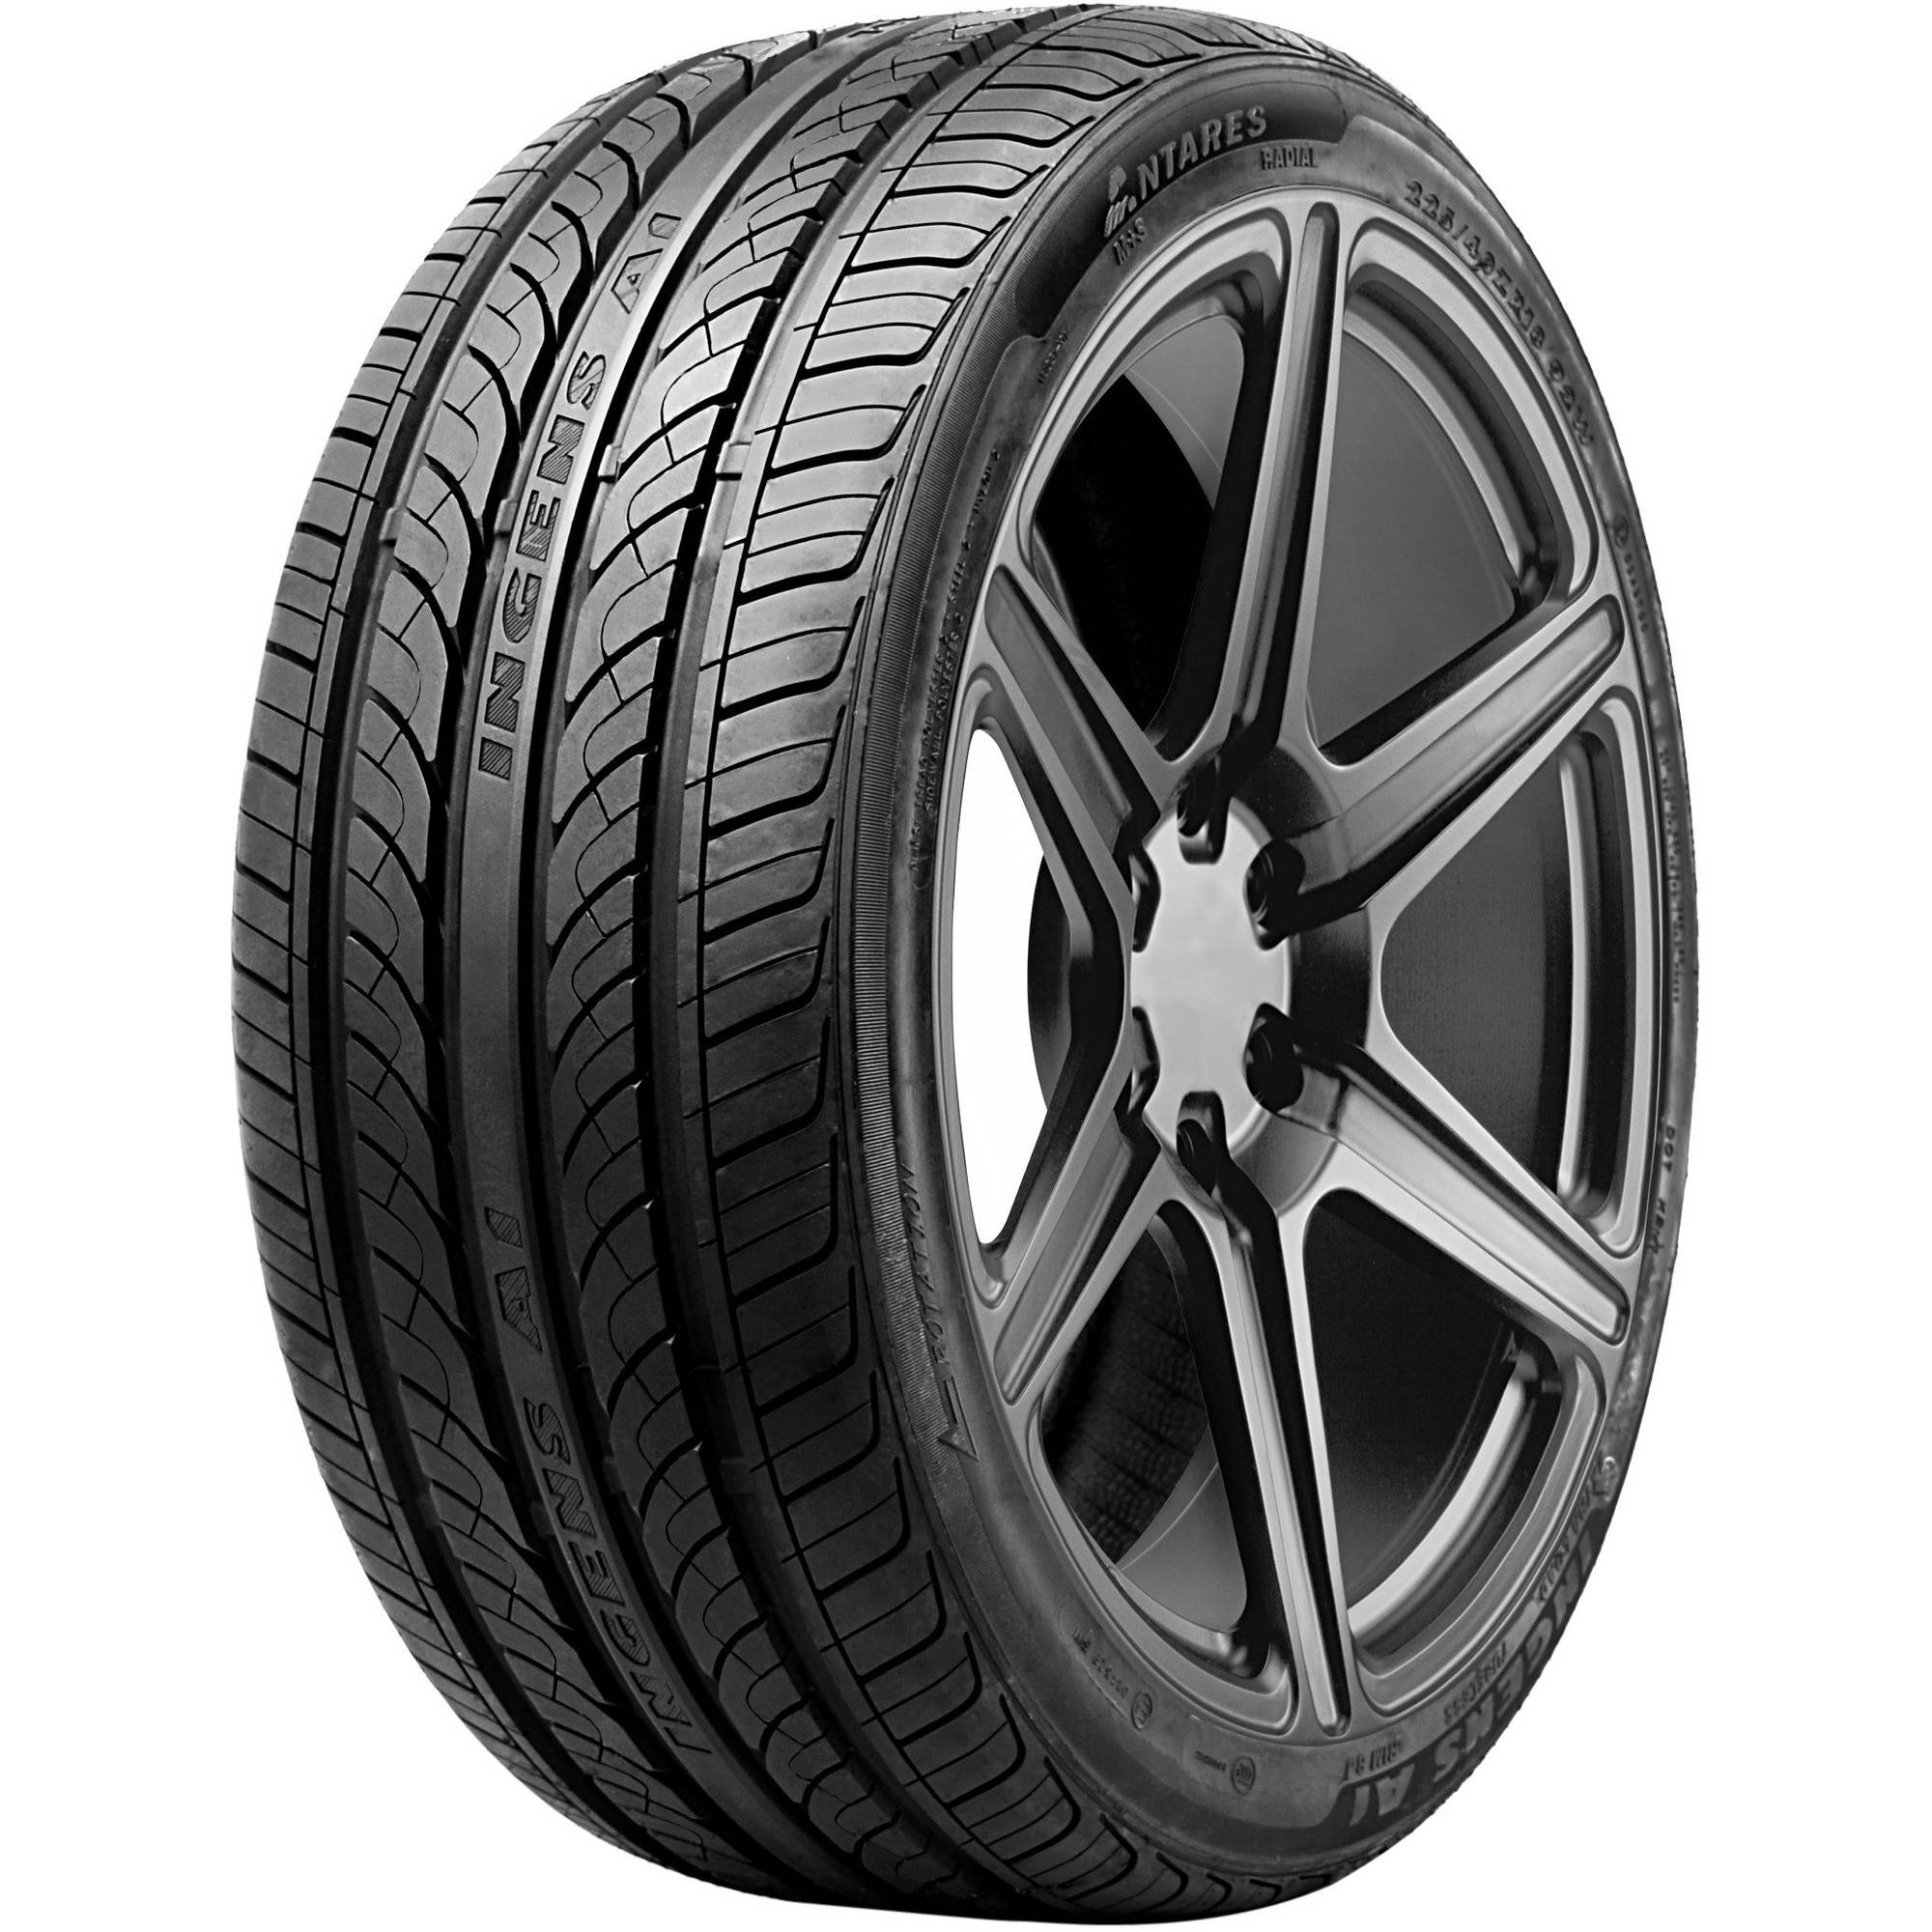 Antares Ingens A1 225 50R17 98W Tire by Antares